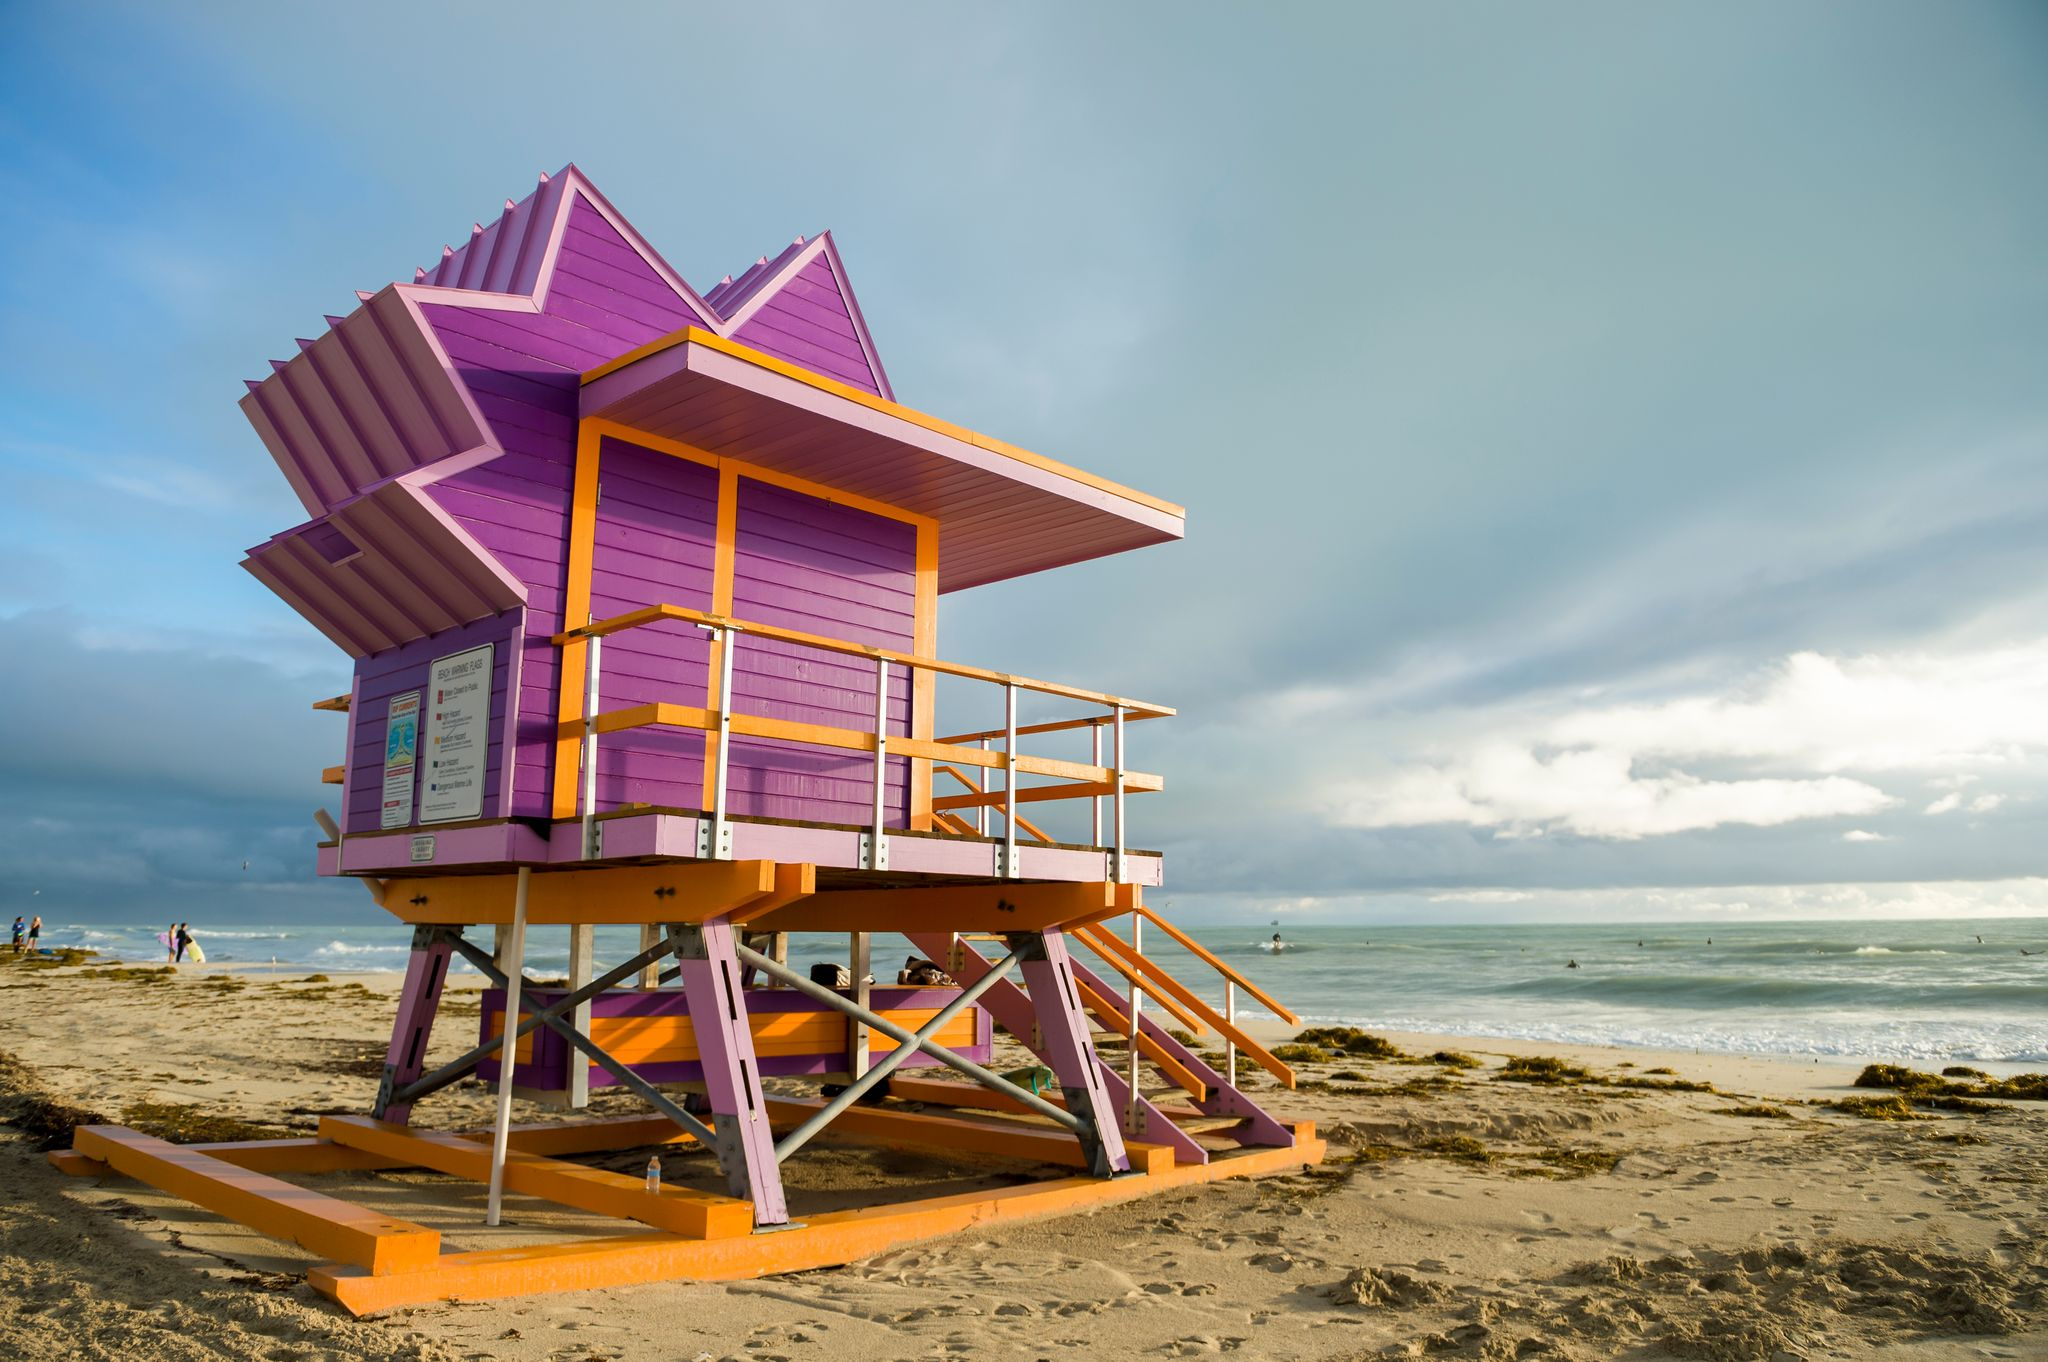 Lifeguard Tower at Lummus Park Beach near The Shoreline at Solé Mia Apartments in North Miami